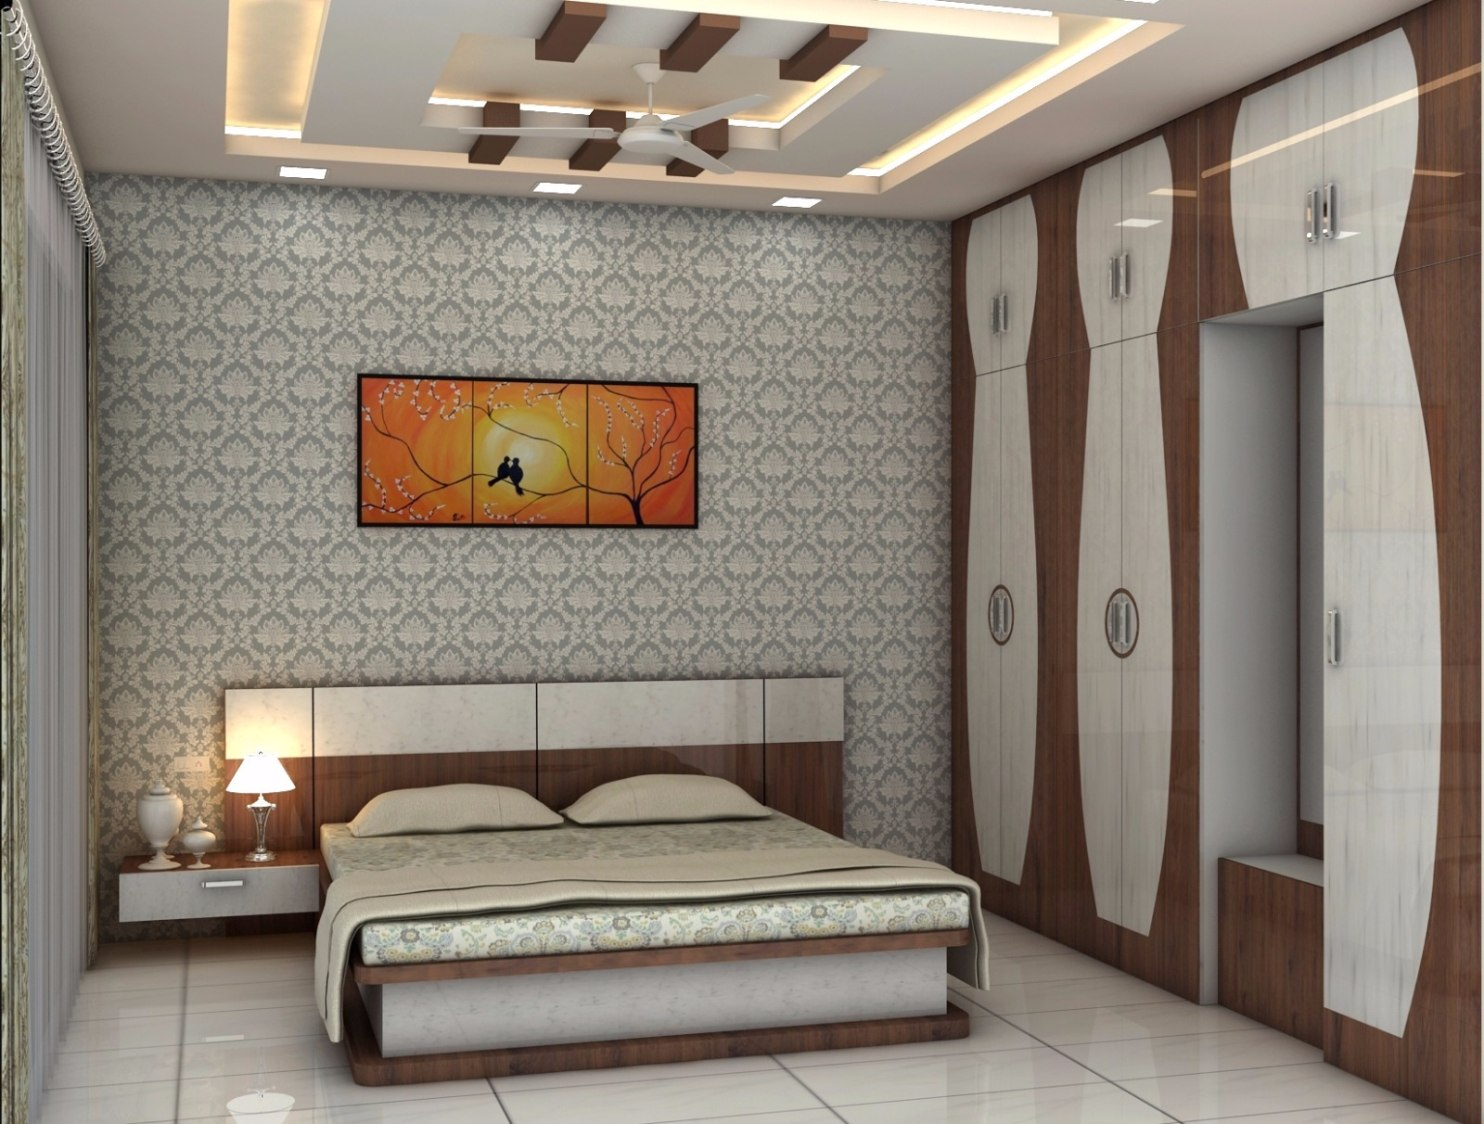 Bedroom with wallpaper and false ceiling by Talha Naim Momin Modern | Interior Design Photos & Ideas